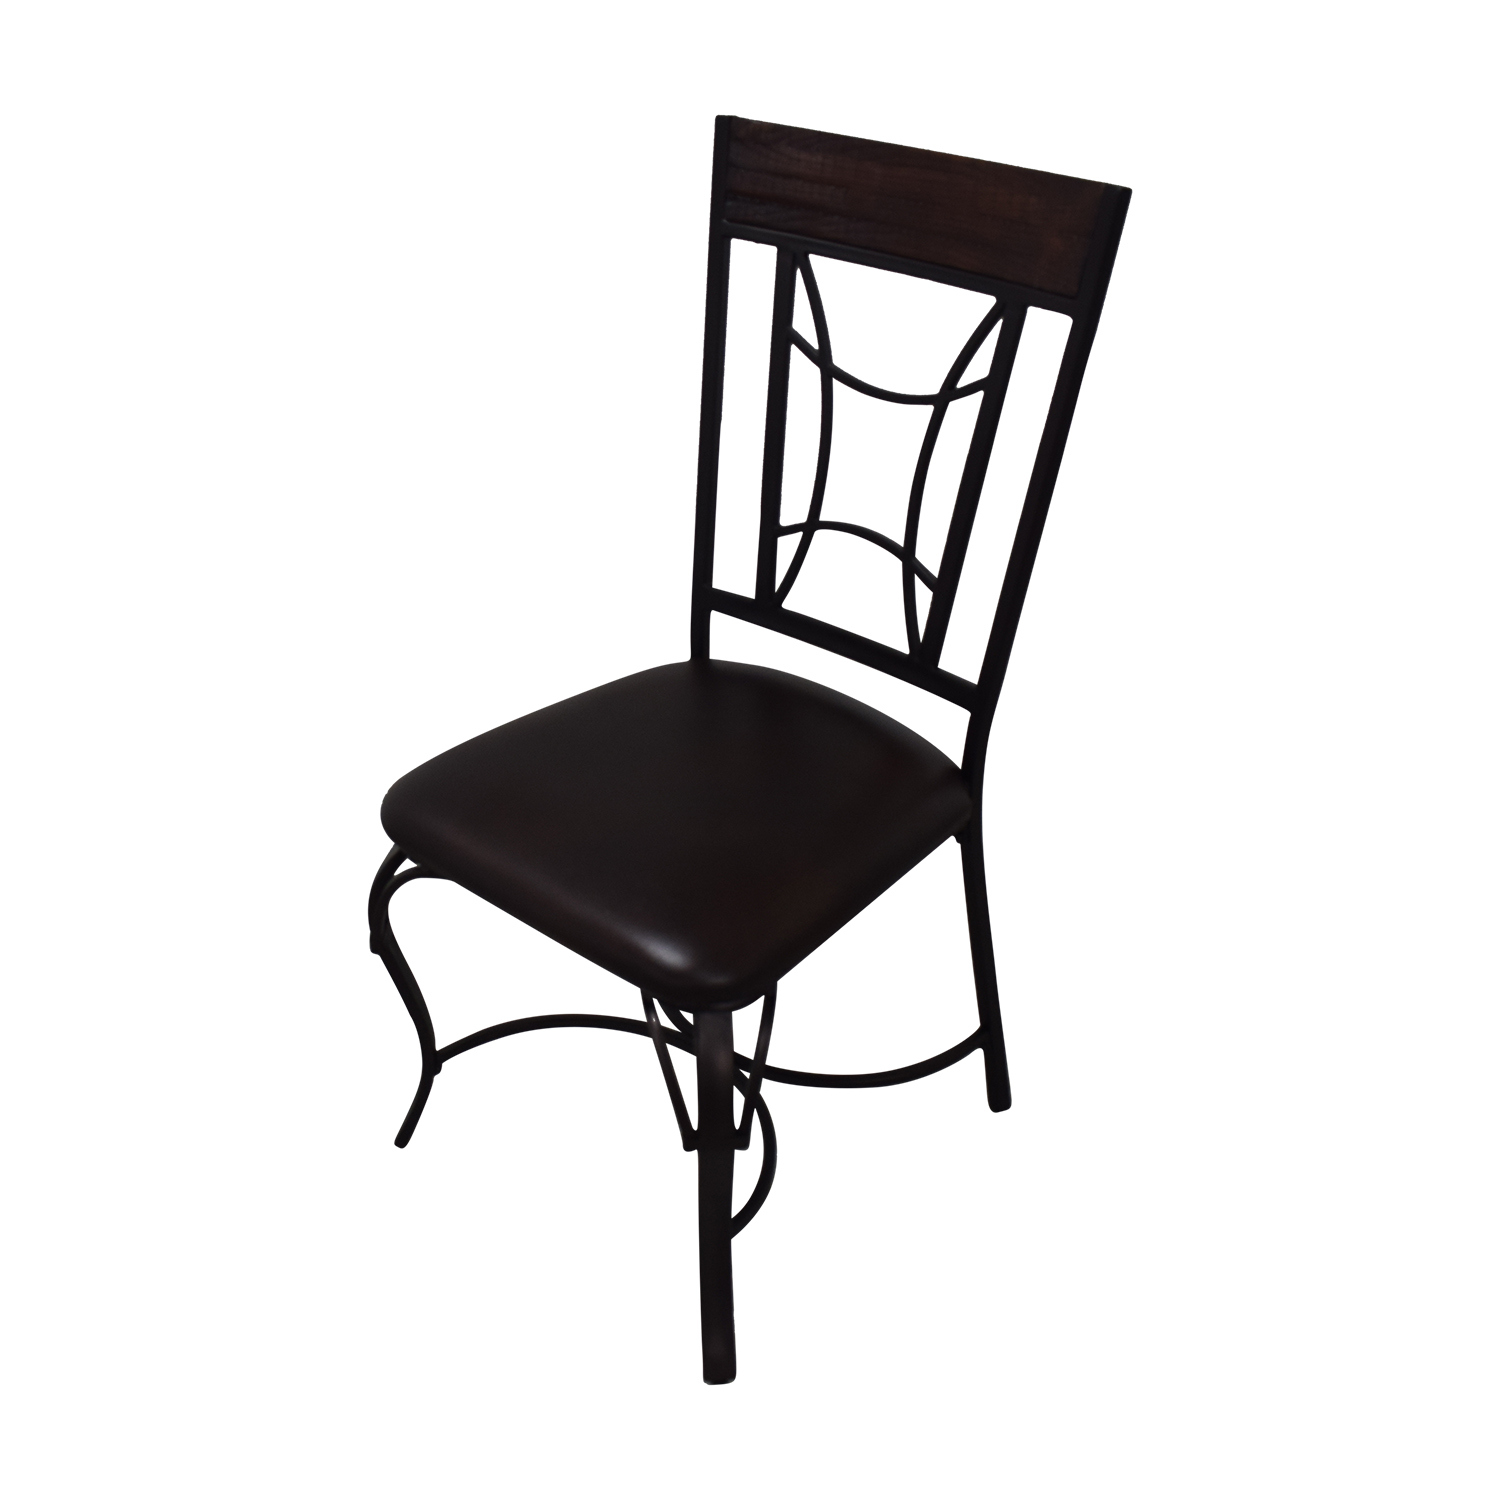 Hillsdale Furniture Hillsdale Furniture Dining Chairs used